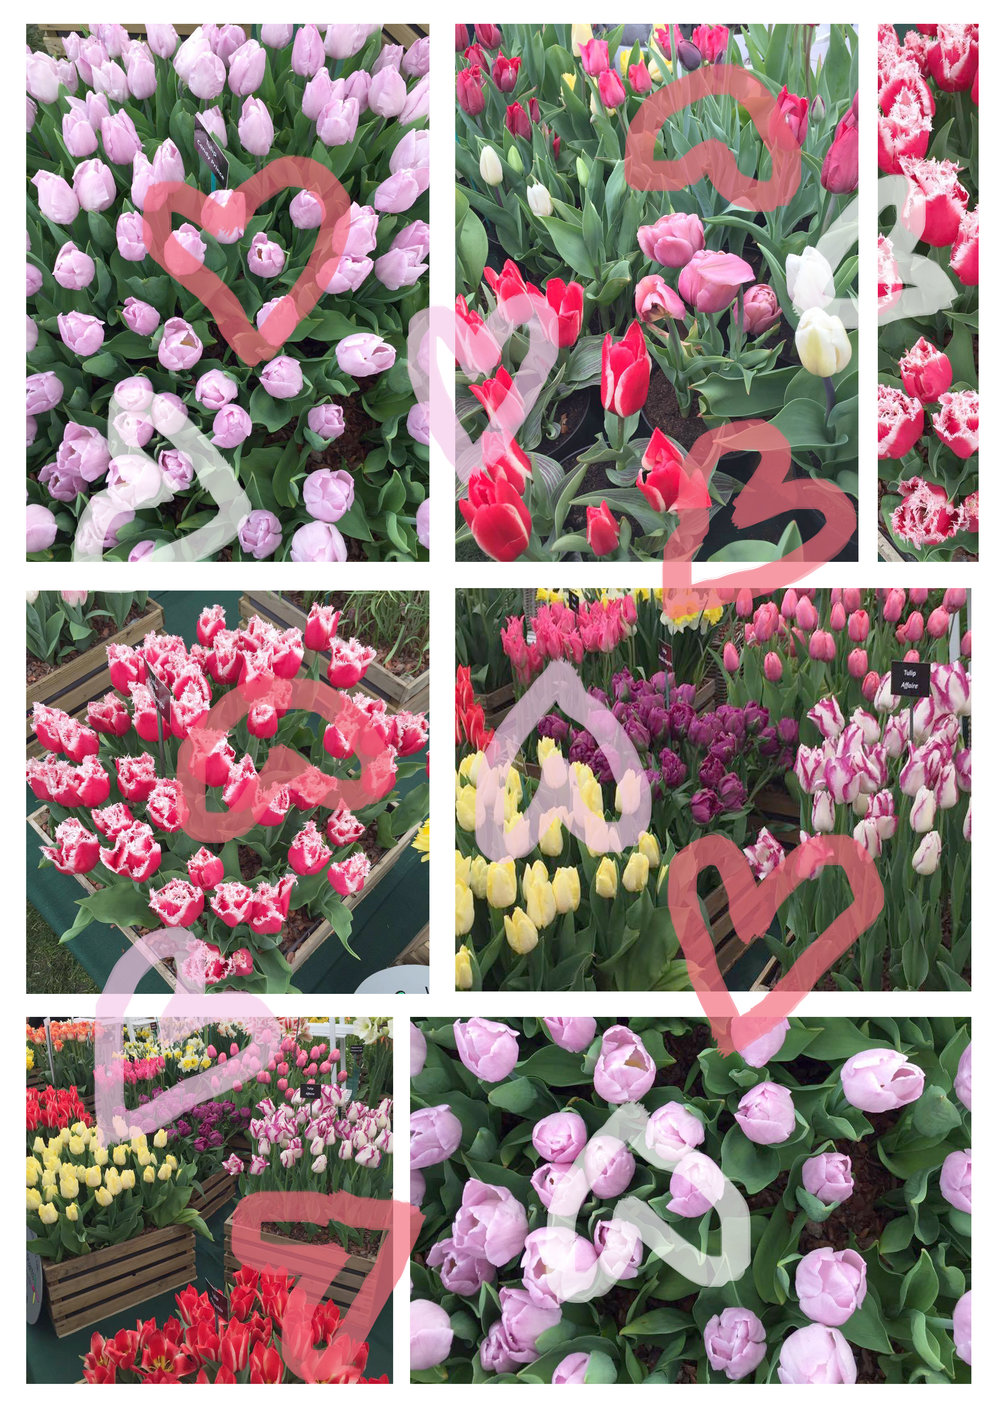 valentinesflowers.jpg